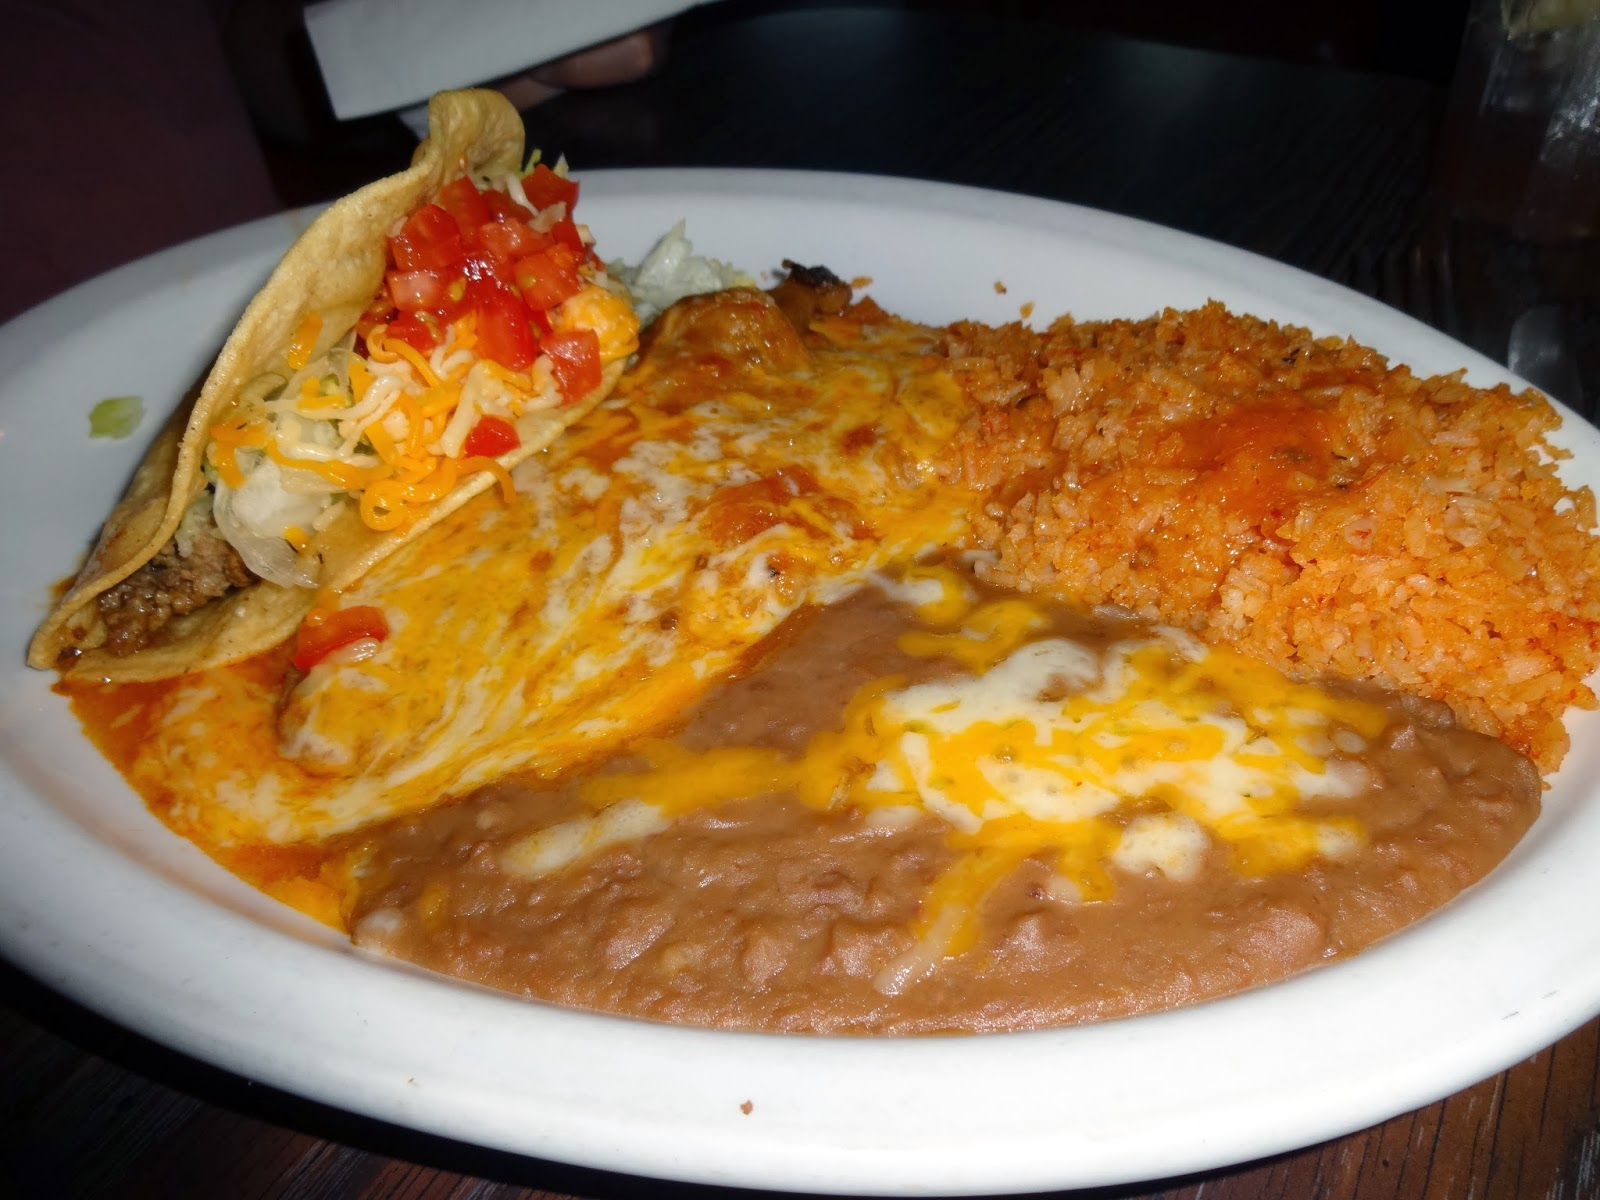 Eating My Way Through OC: Los Gallos Ruling the Roost?